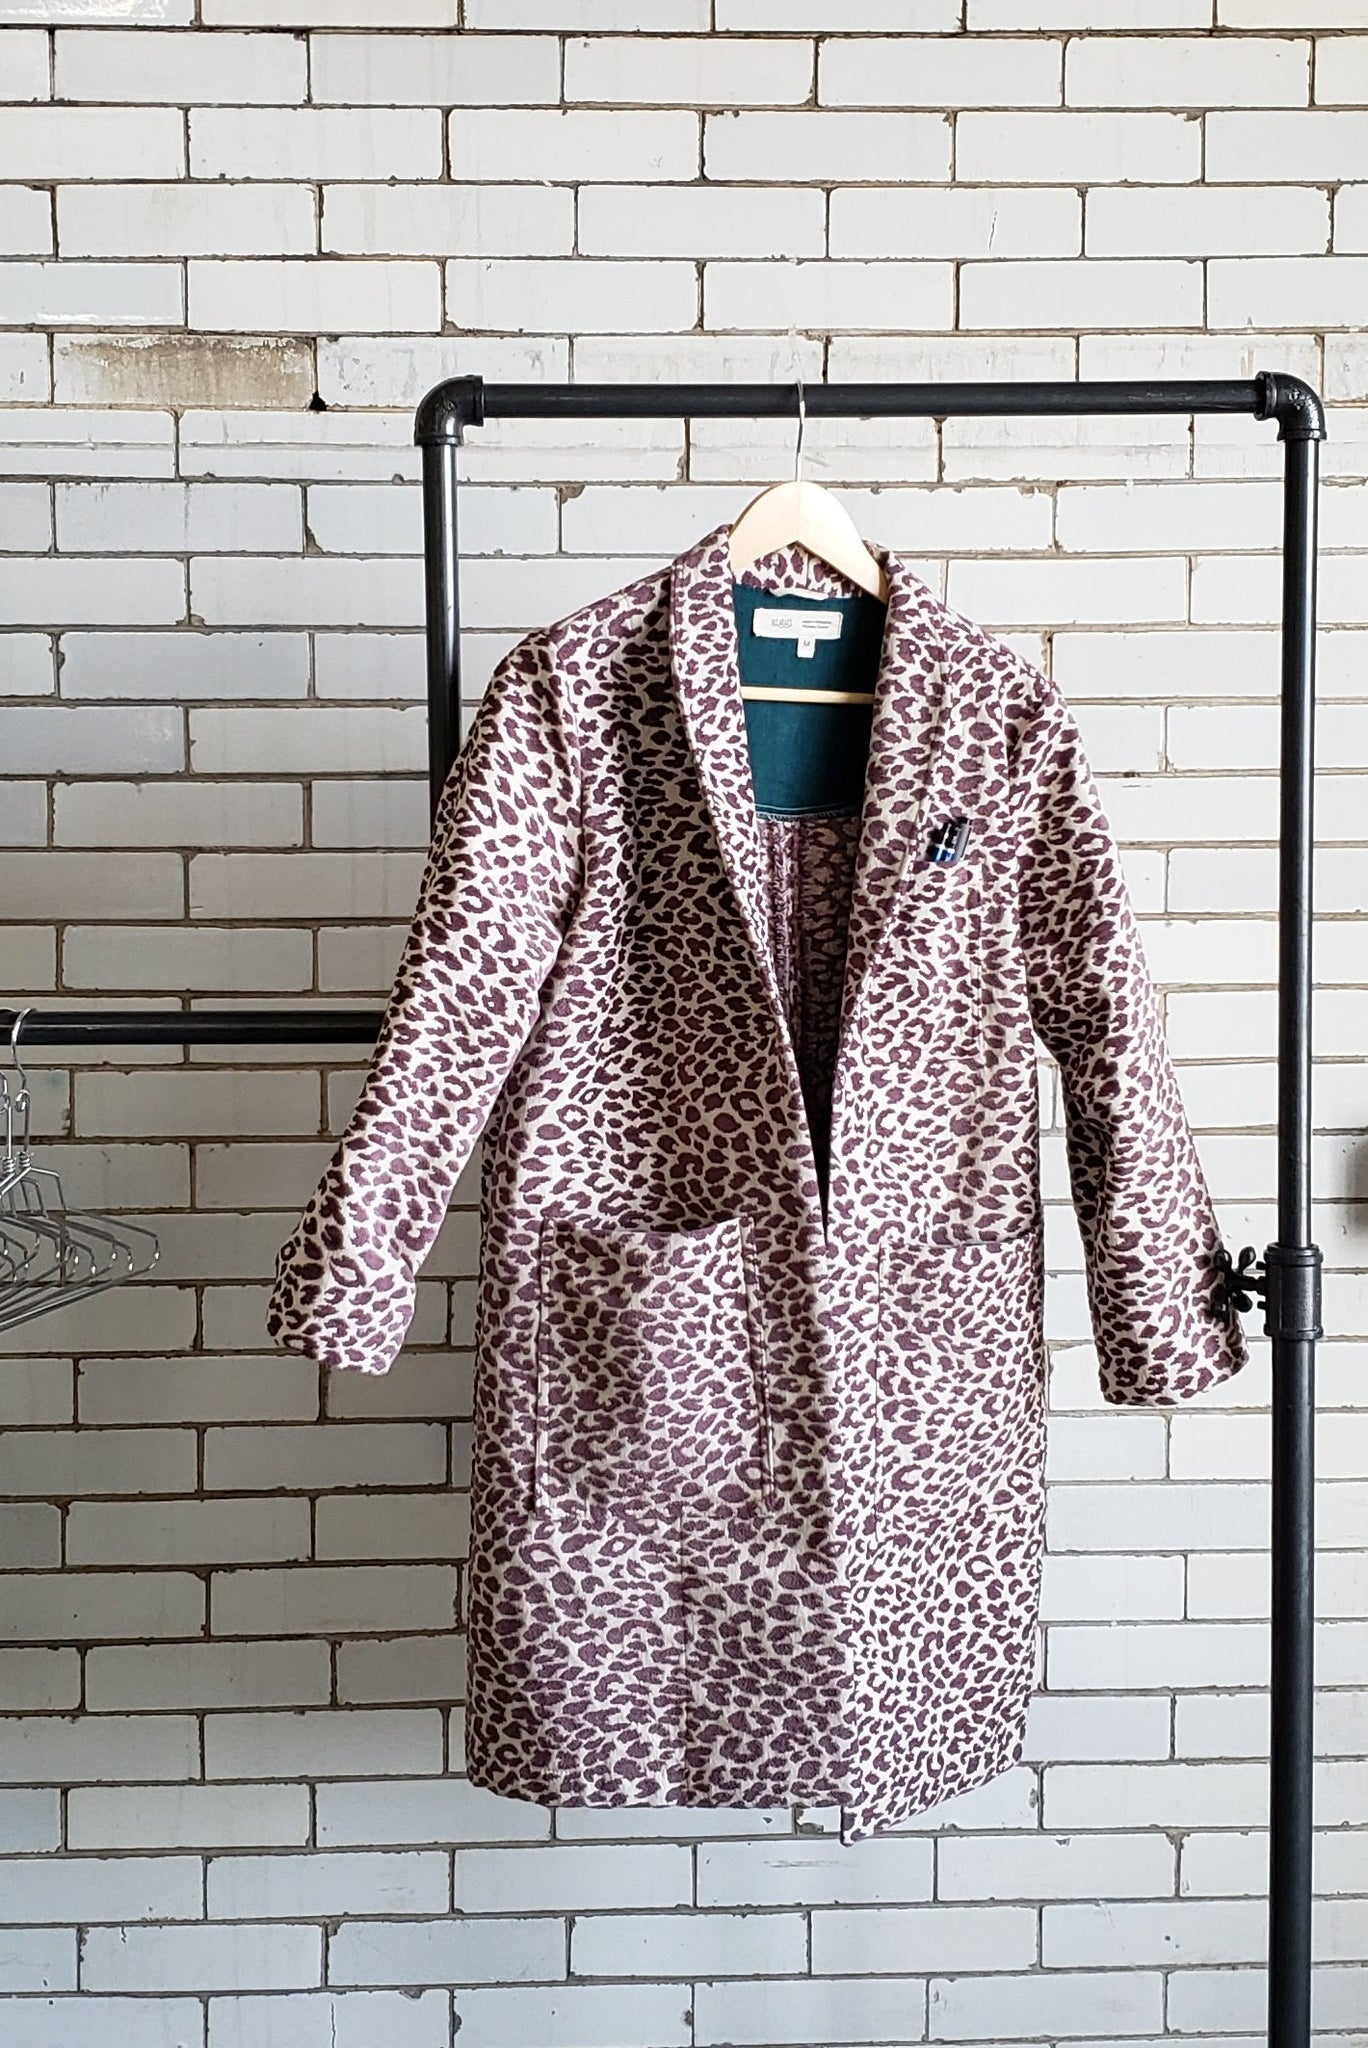 purple and cream women's coat hanging on a pipe clothing rack in front of a white brick wall